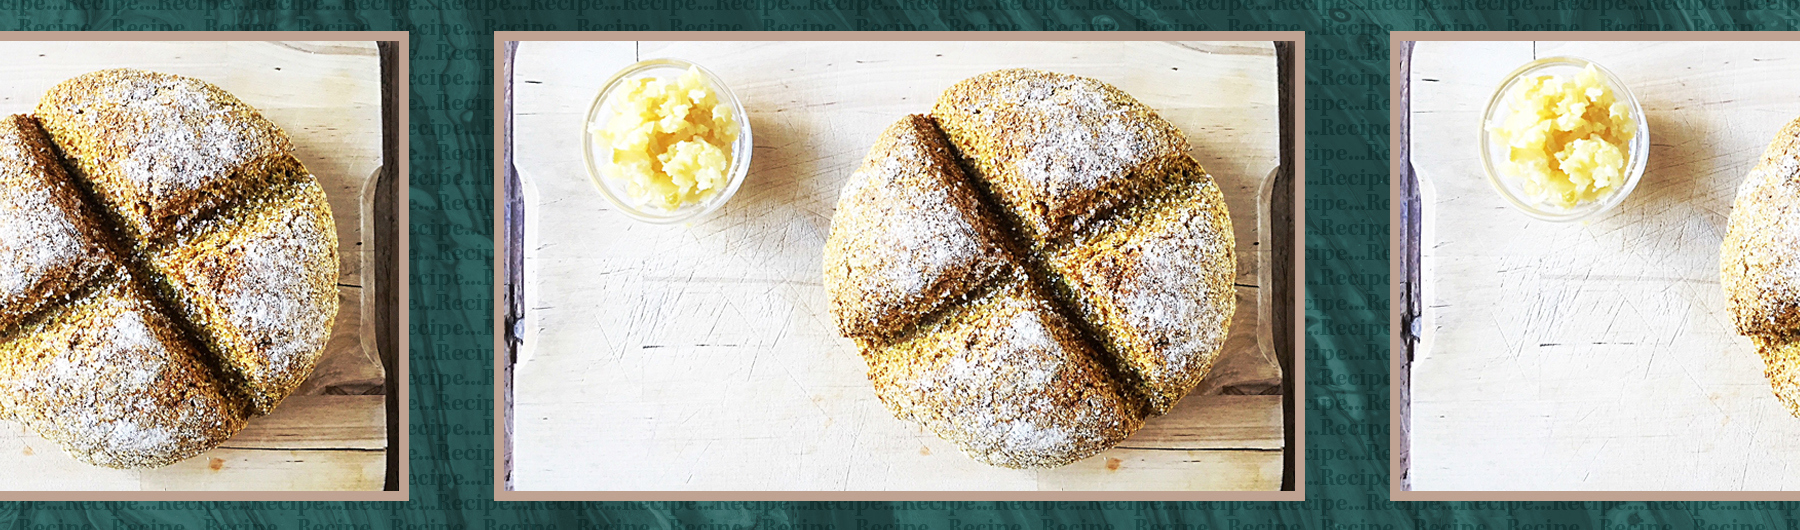 Irish Soda & Turmeric Bread